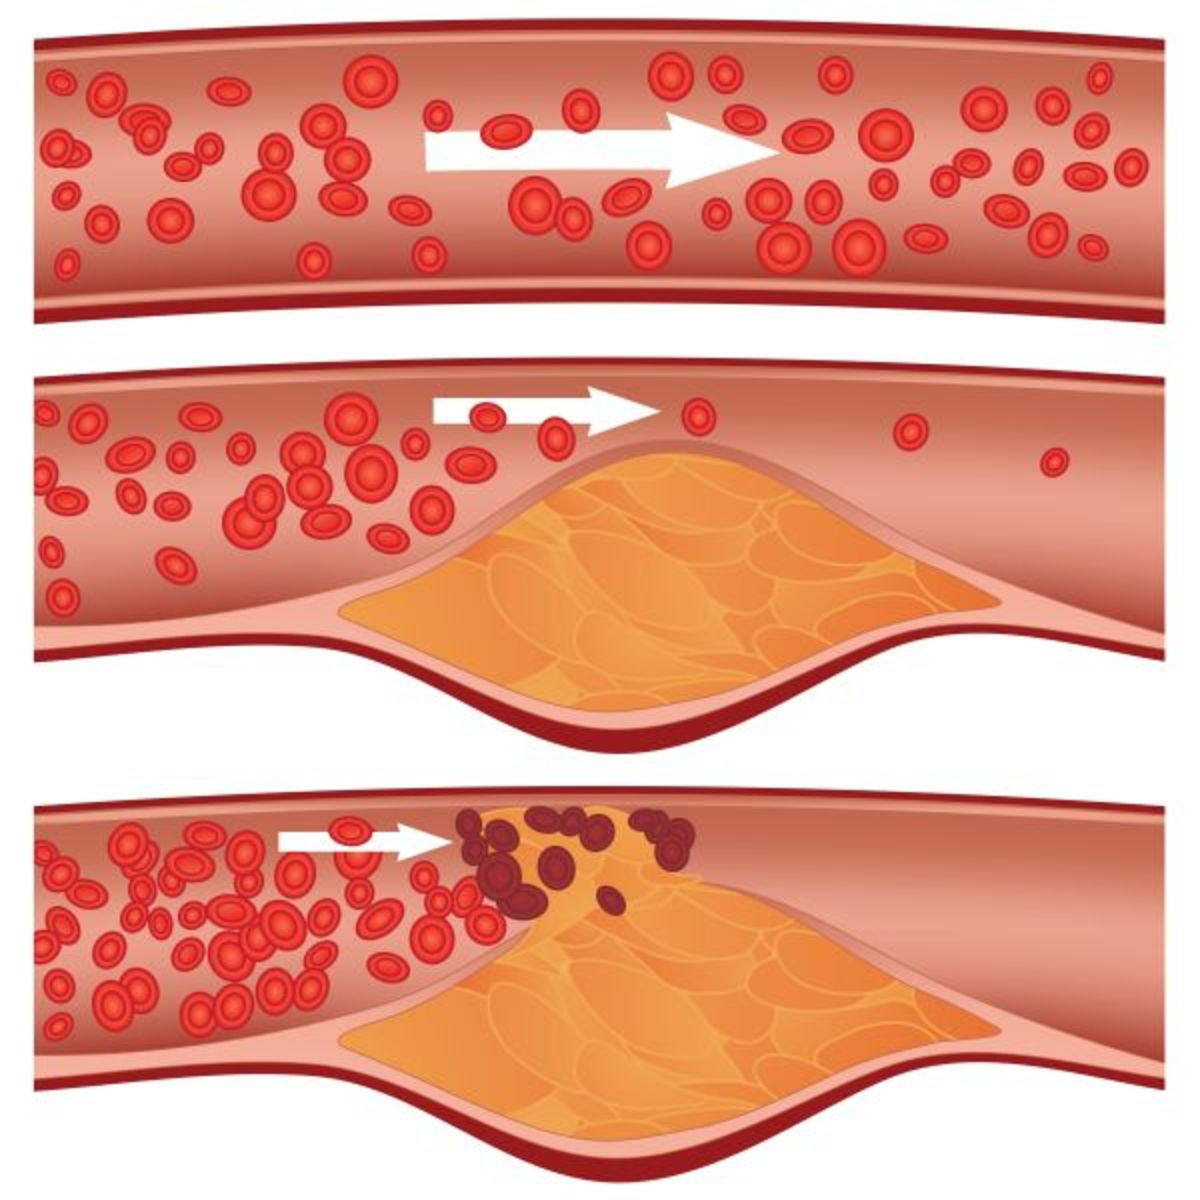 Atherosclerosis - Biology - AS Level